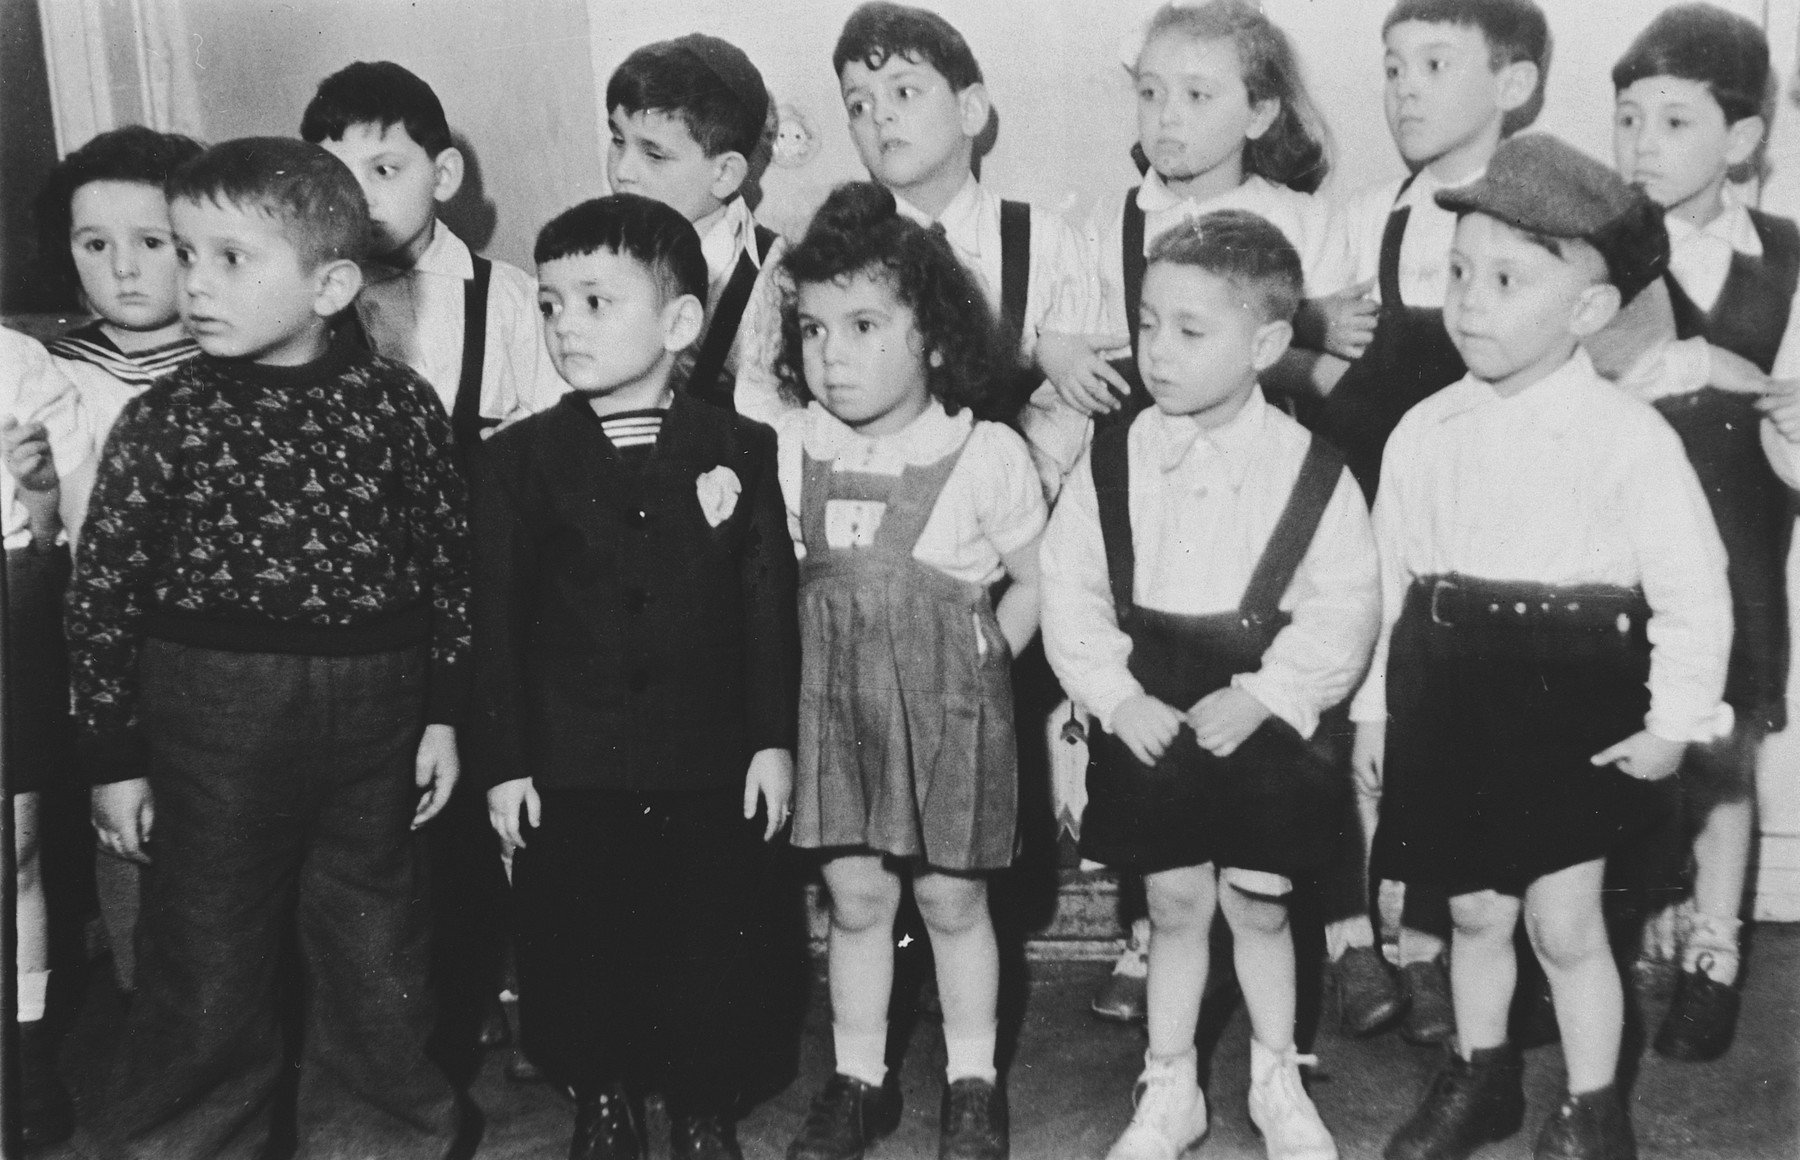 Group portrait of children in the Jewish kindergarten in Lodz standing in two rows for what is probably a children's performance.